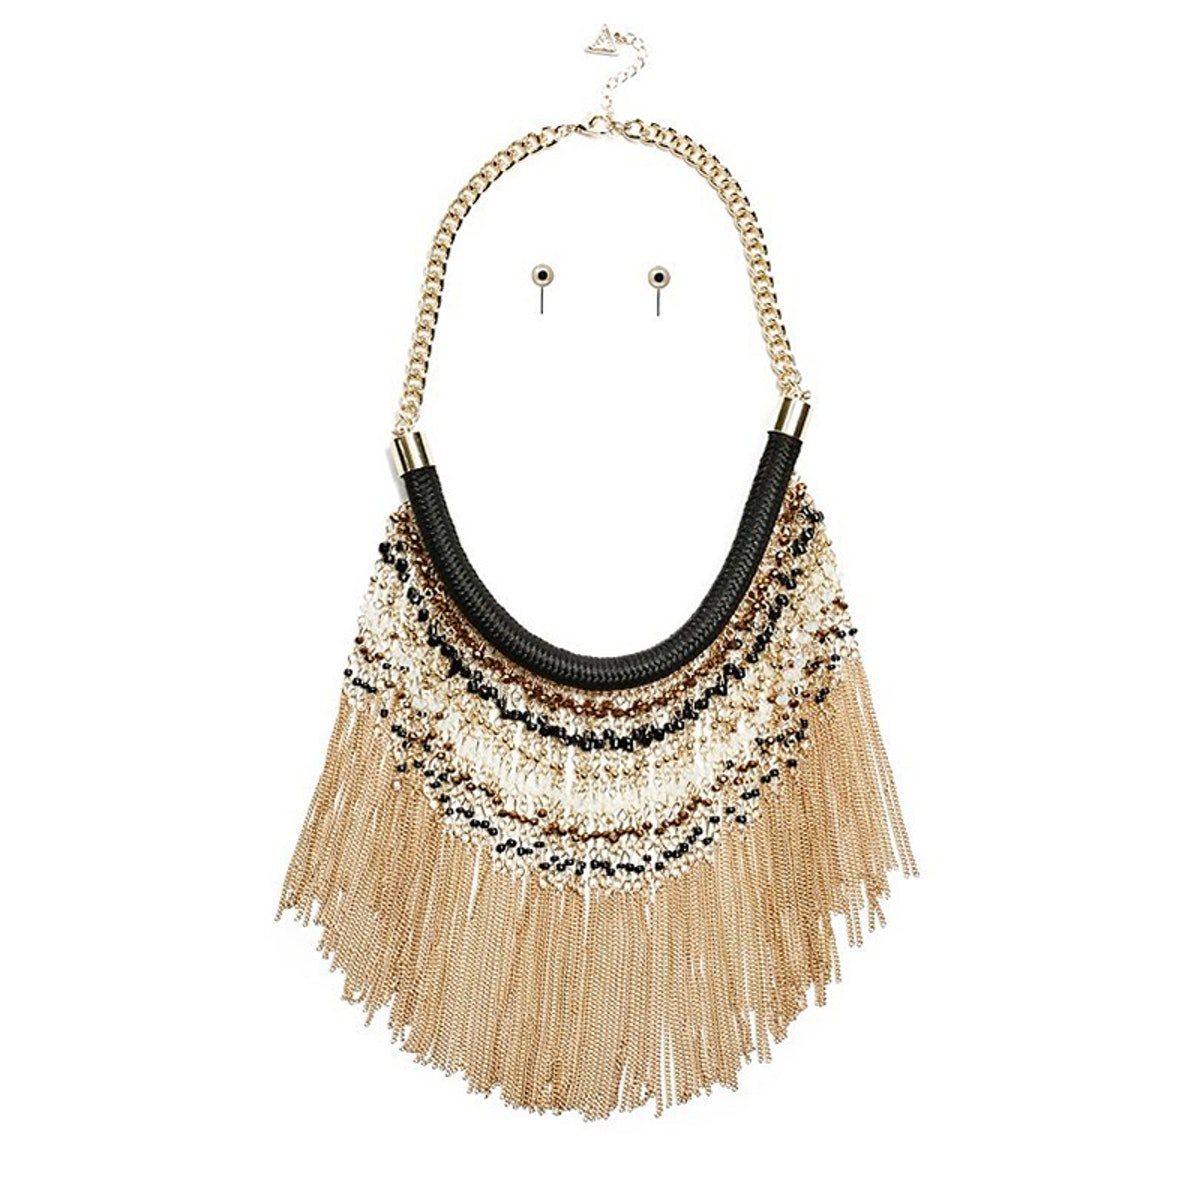 Renee Gold-Tone Necklace and Earrings Set